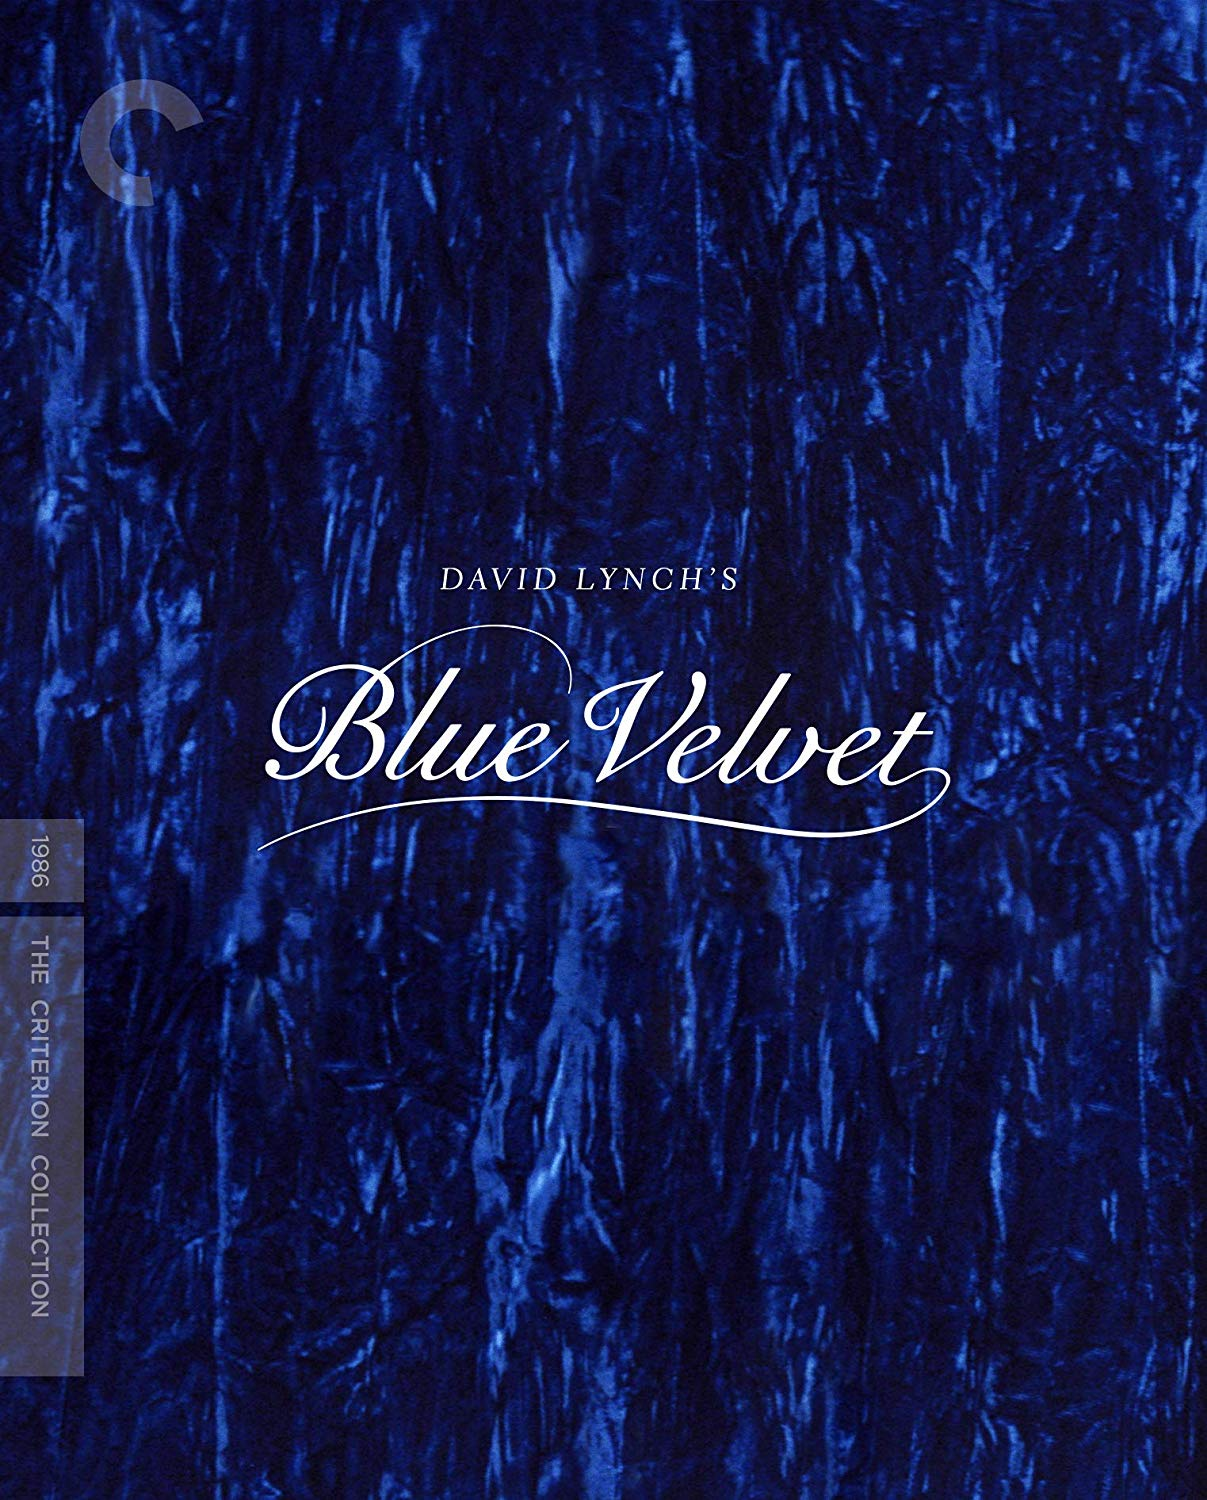 Blu-ray Review: David Lynch's Blue Velvet on the Criterion